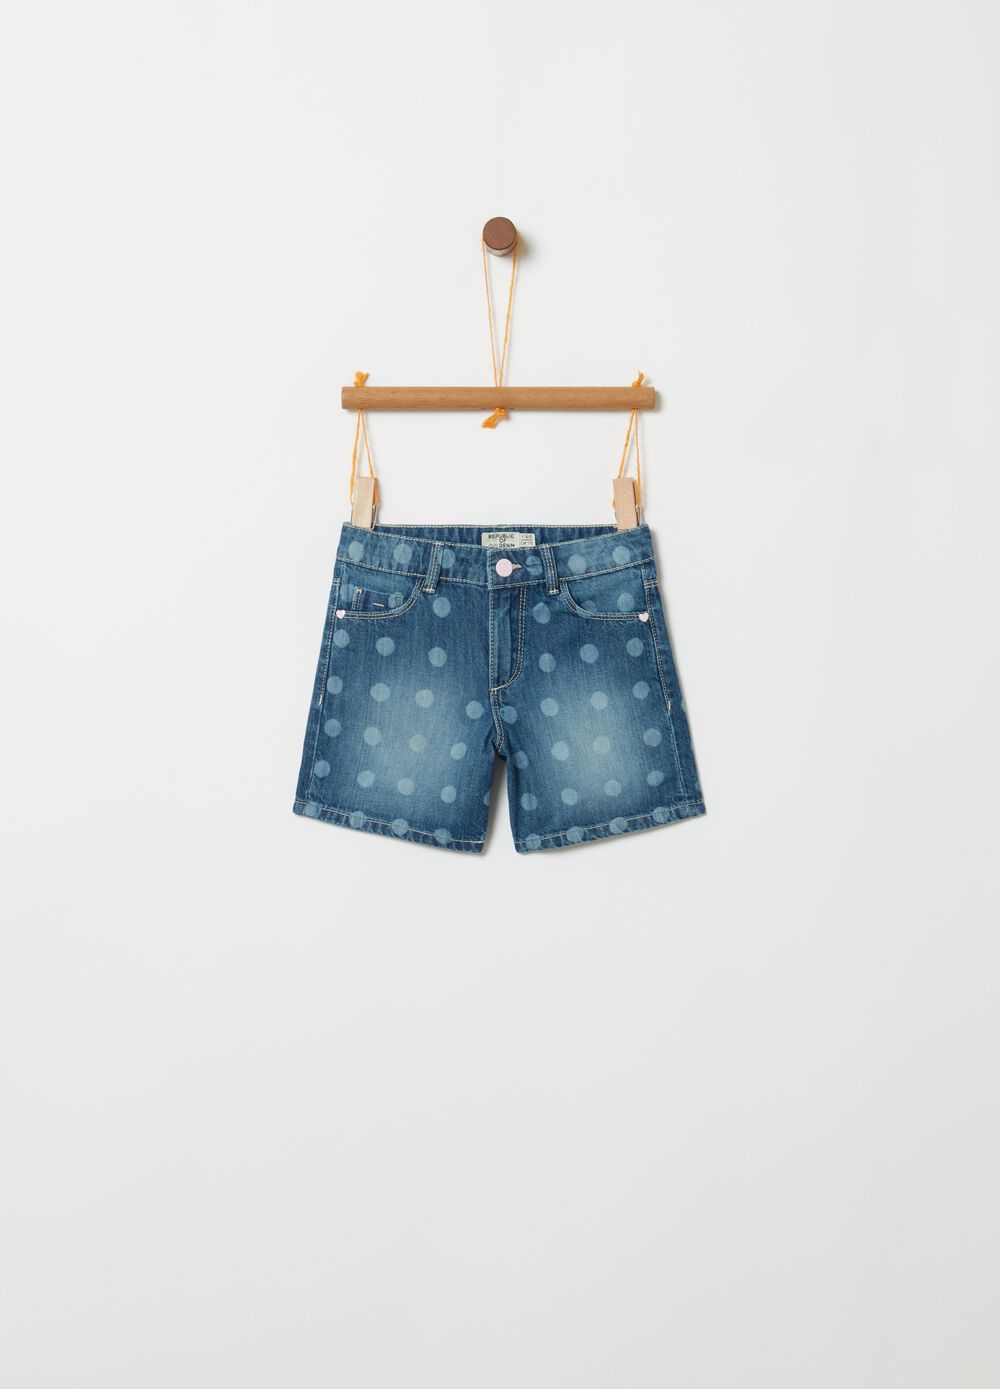 Denim shorts with polka dot pattern